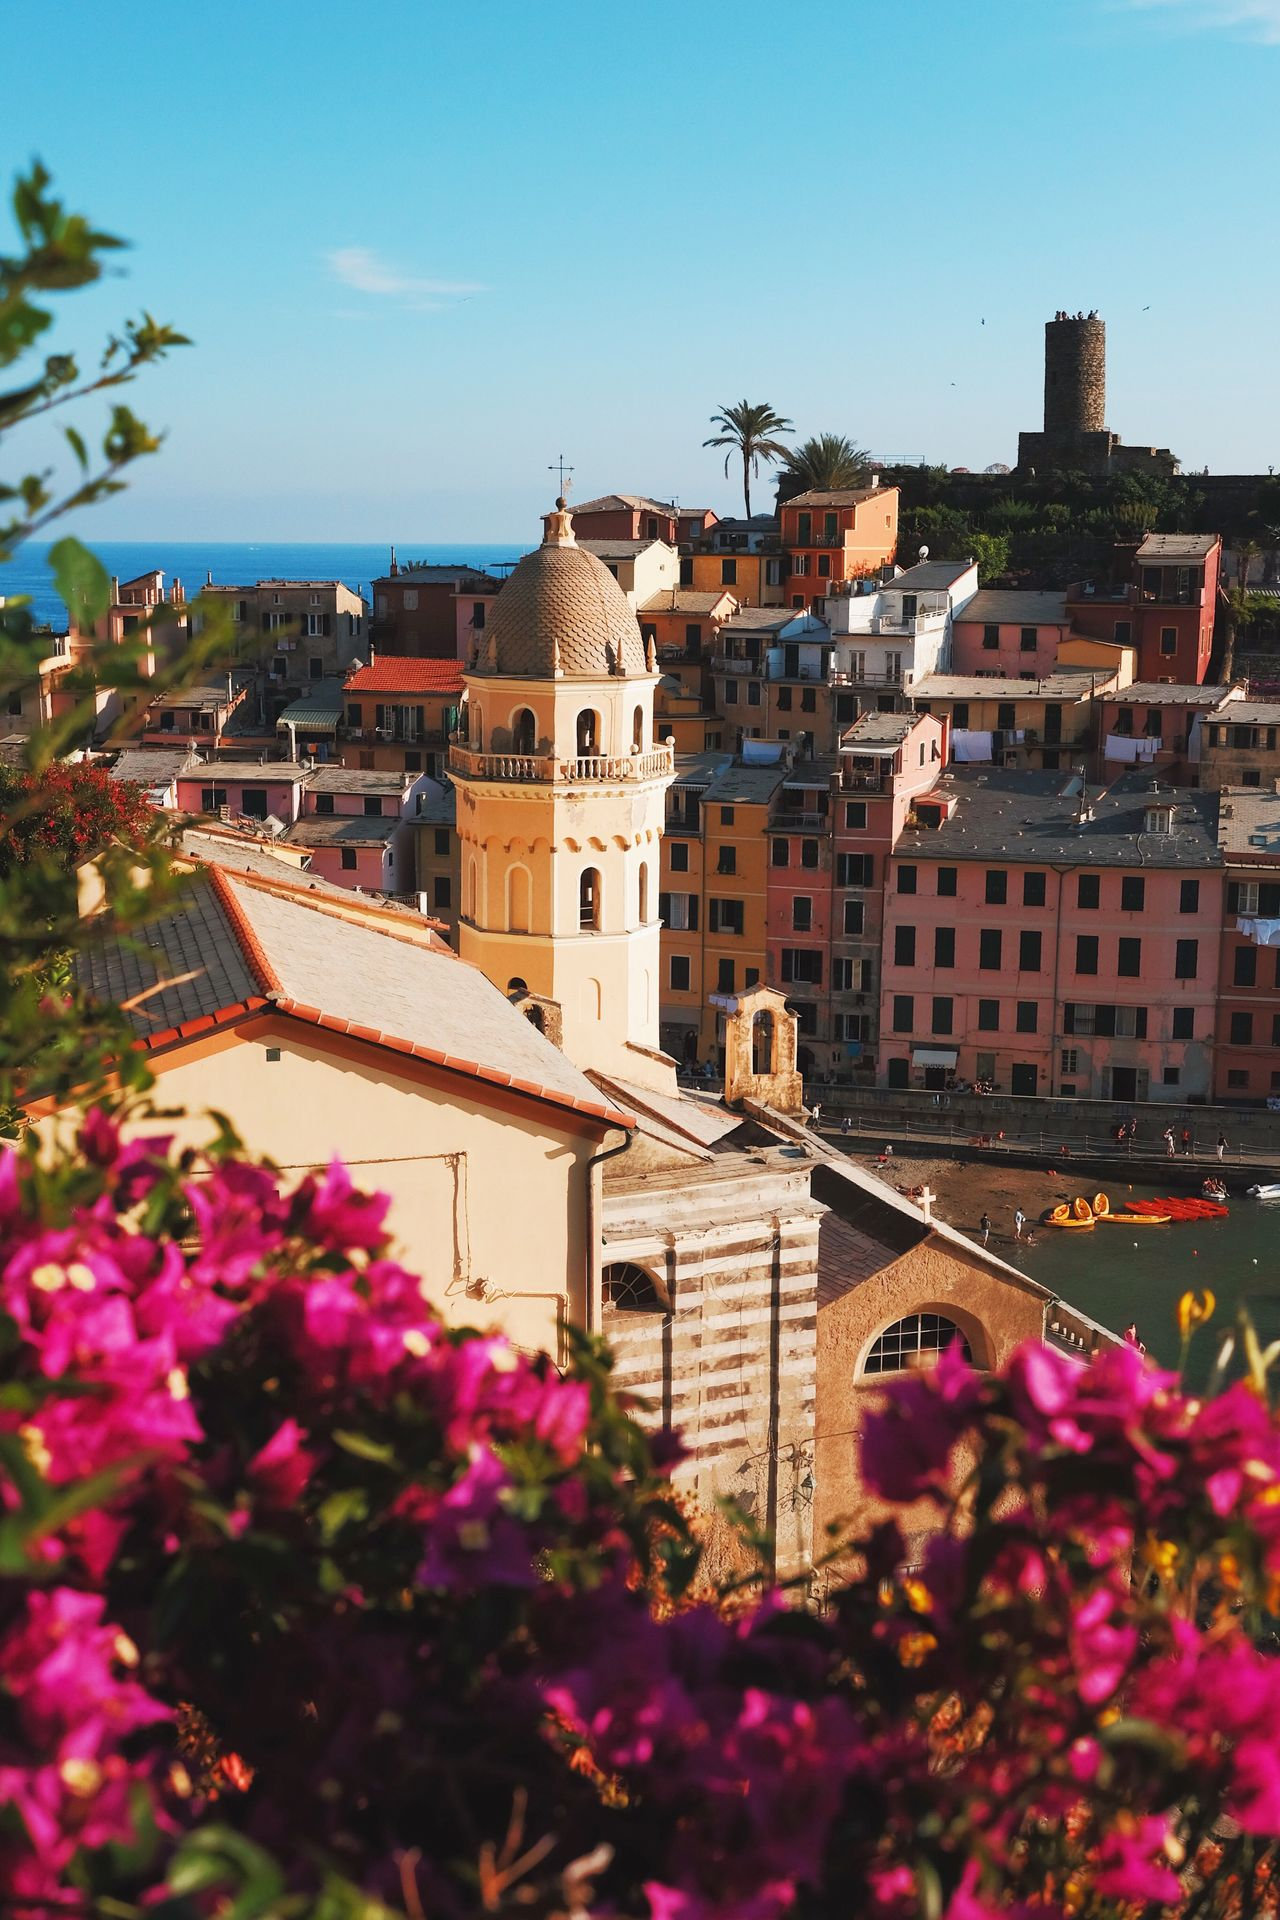 Vernazza. Architecture Flower Building Exterior Built Structure No People Outdoors Sky Day City Tree Cityscape